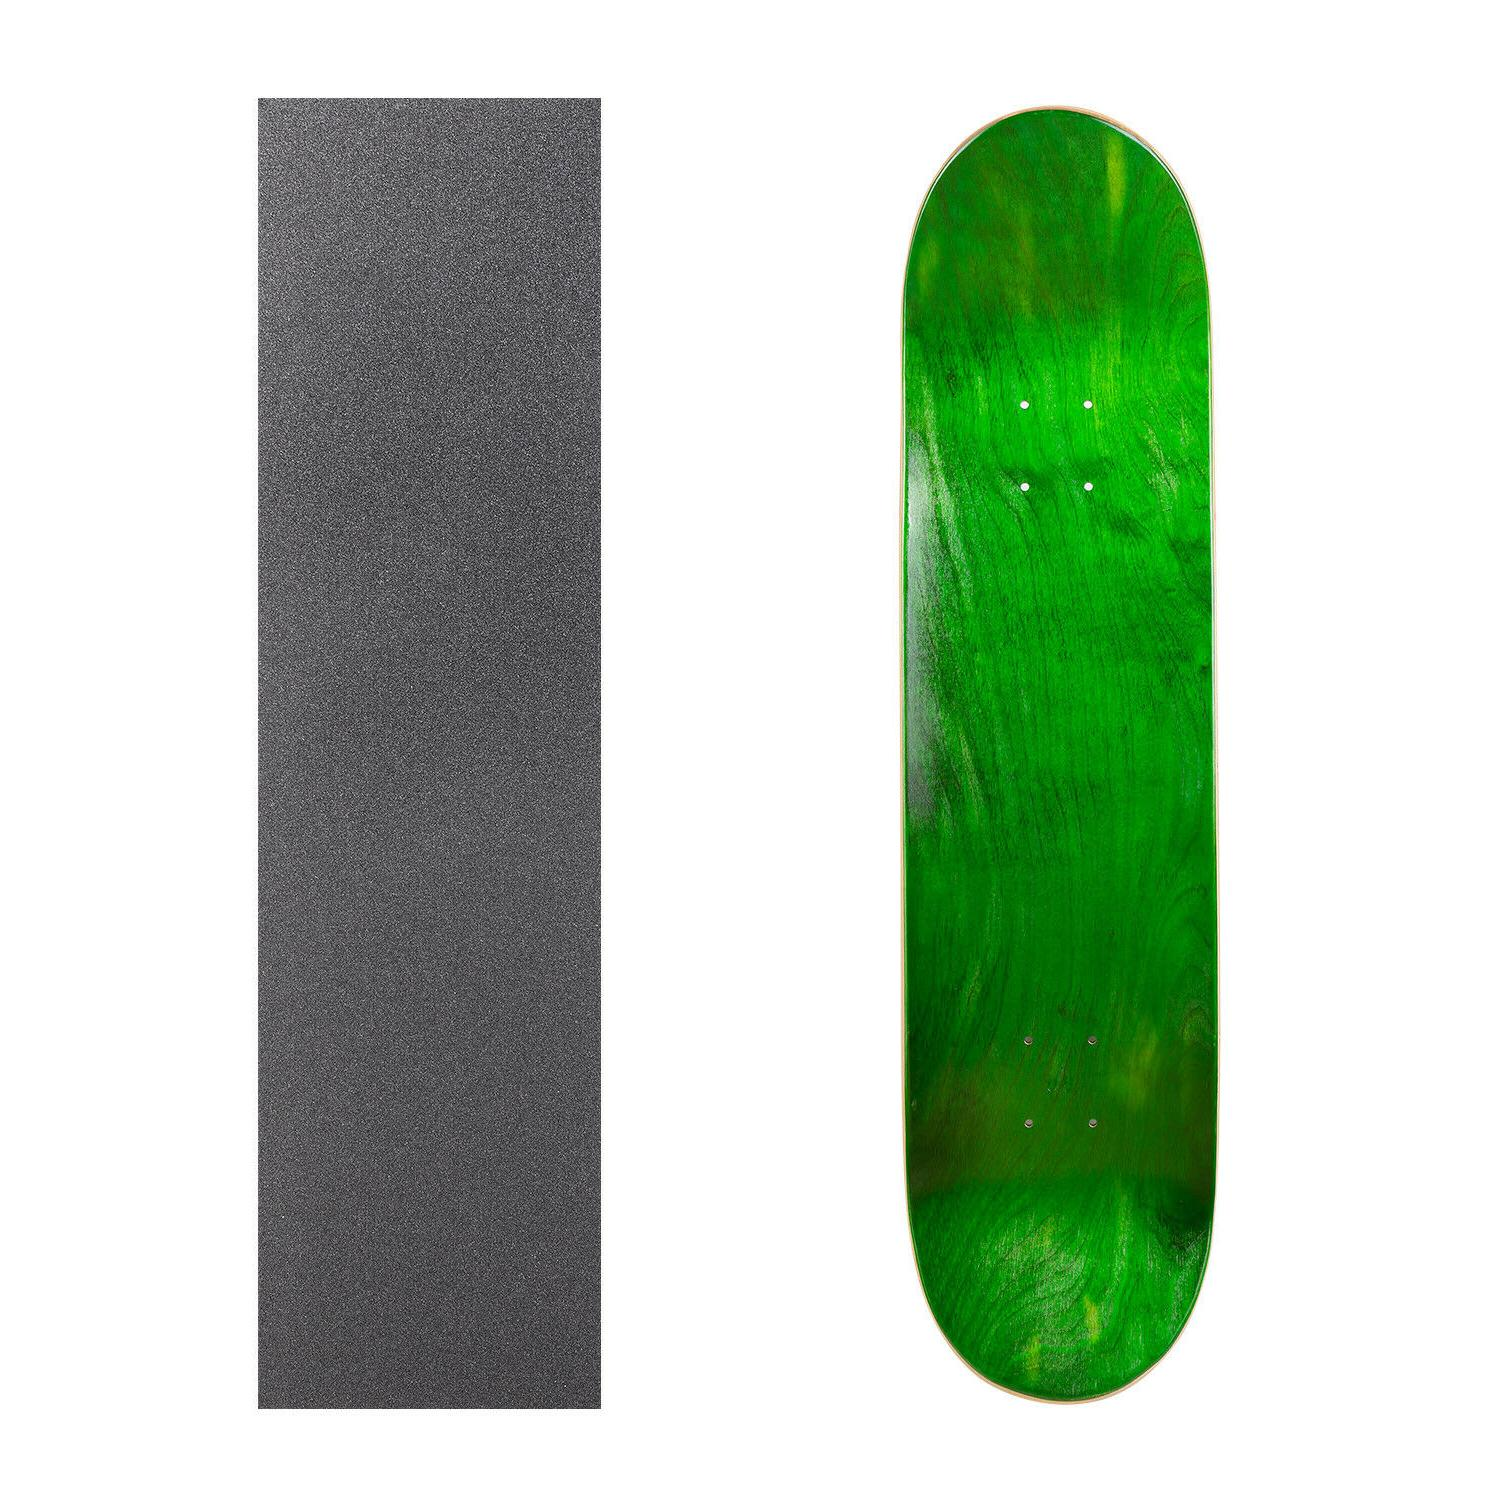 """Cal Blank Skateboard Deck 7.75"""" 8.25"""" with Grip Multi-Colors Set"""